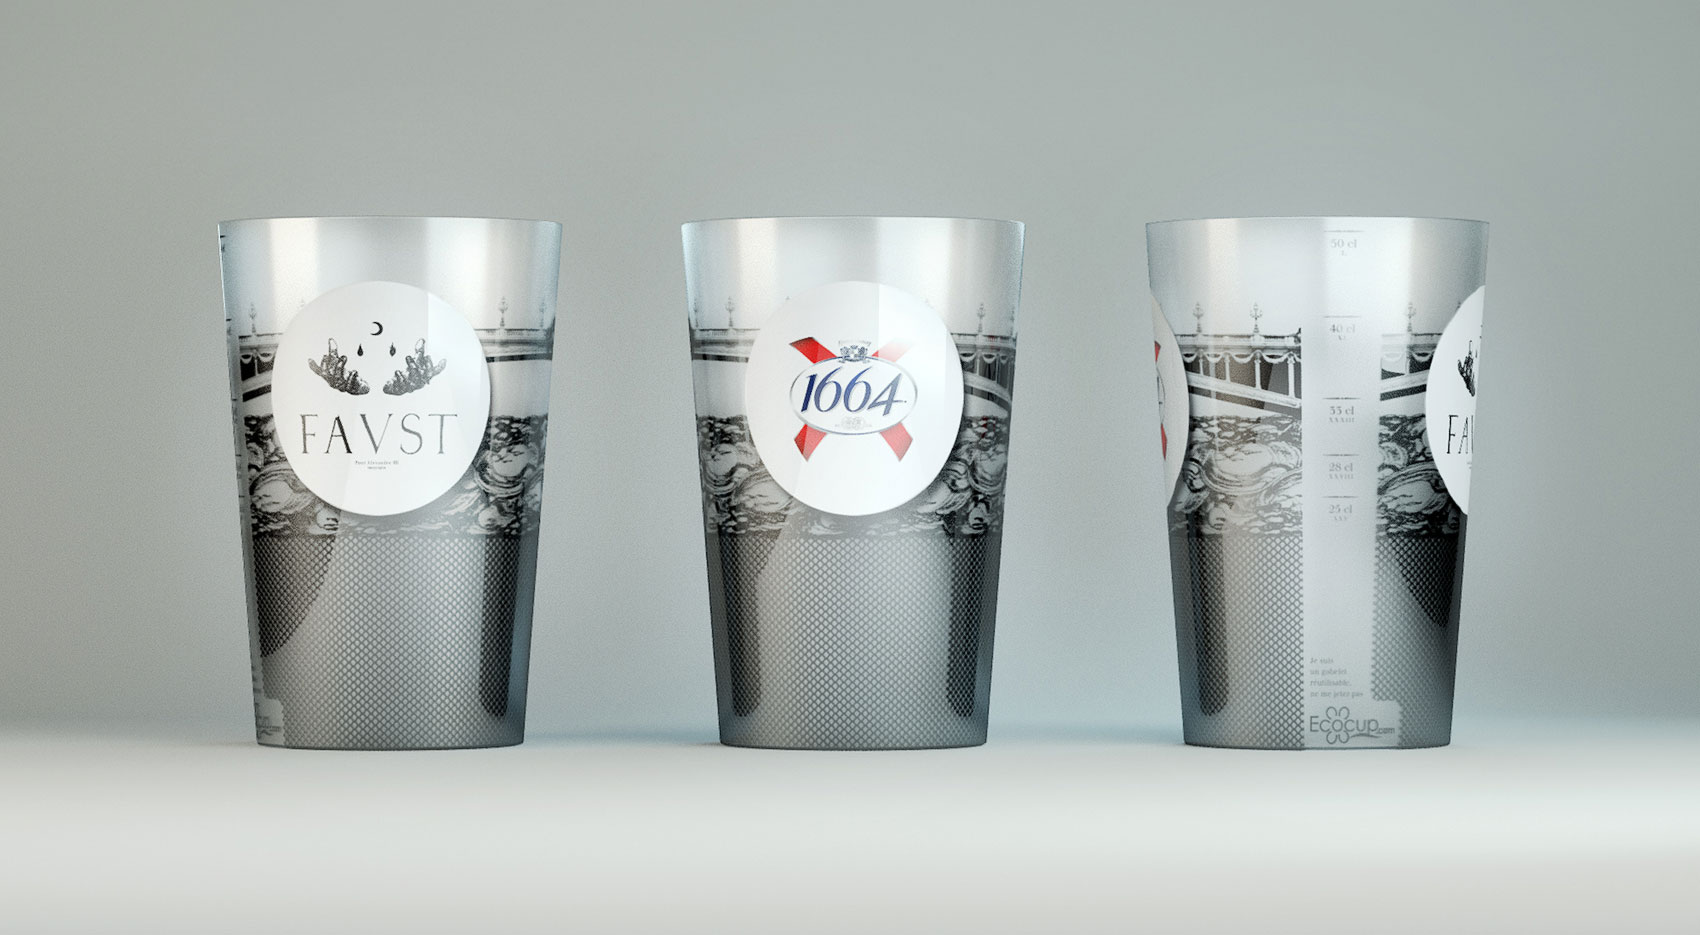 ecocup-1664-faust-3